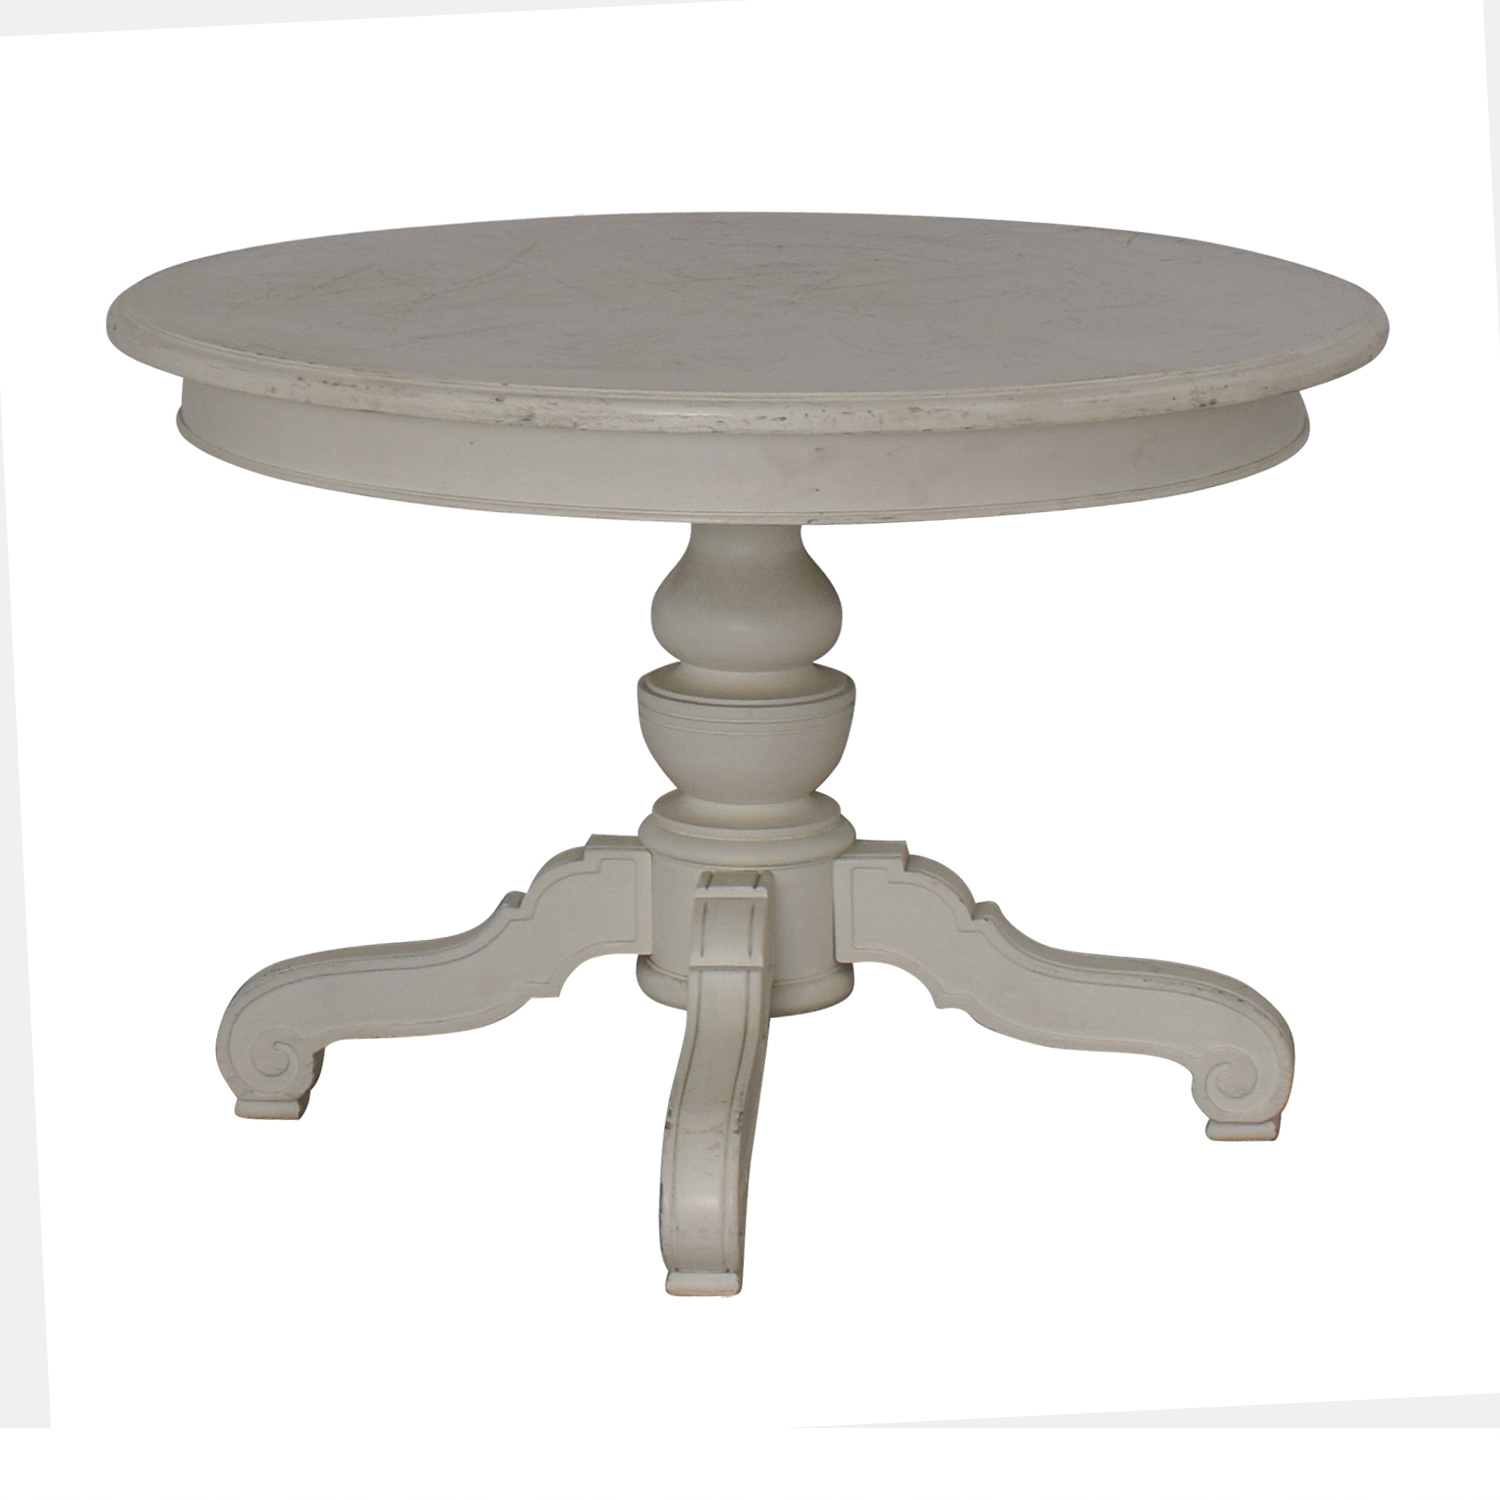 Victorian Style Round White Pedestal Dining Table